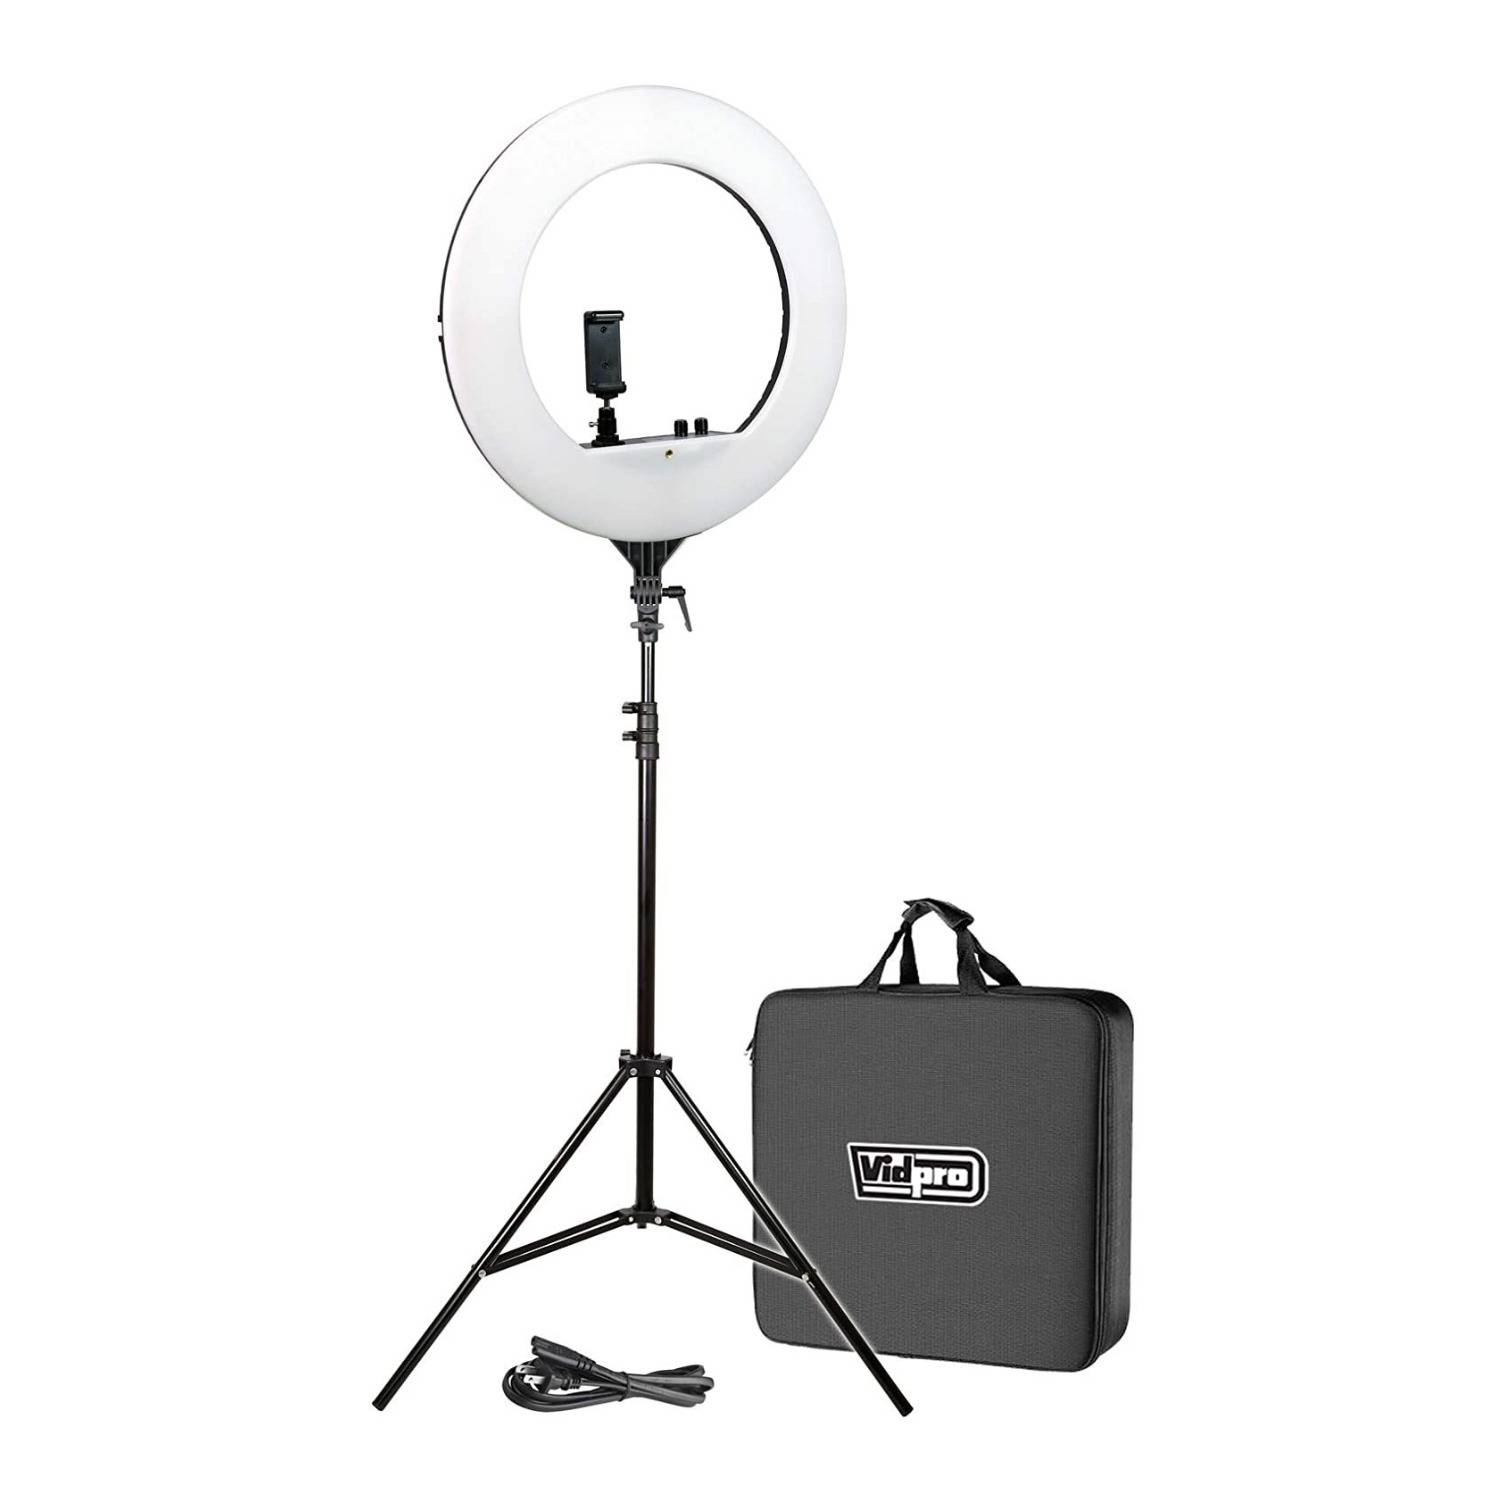 Vidpro RL-18 LED 18-Inch Ring Light Kit with Stand and Case